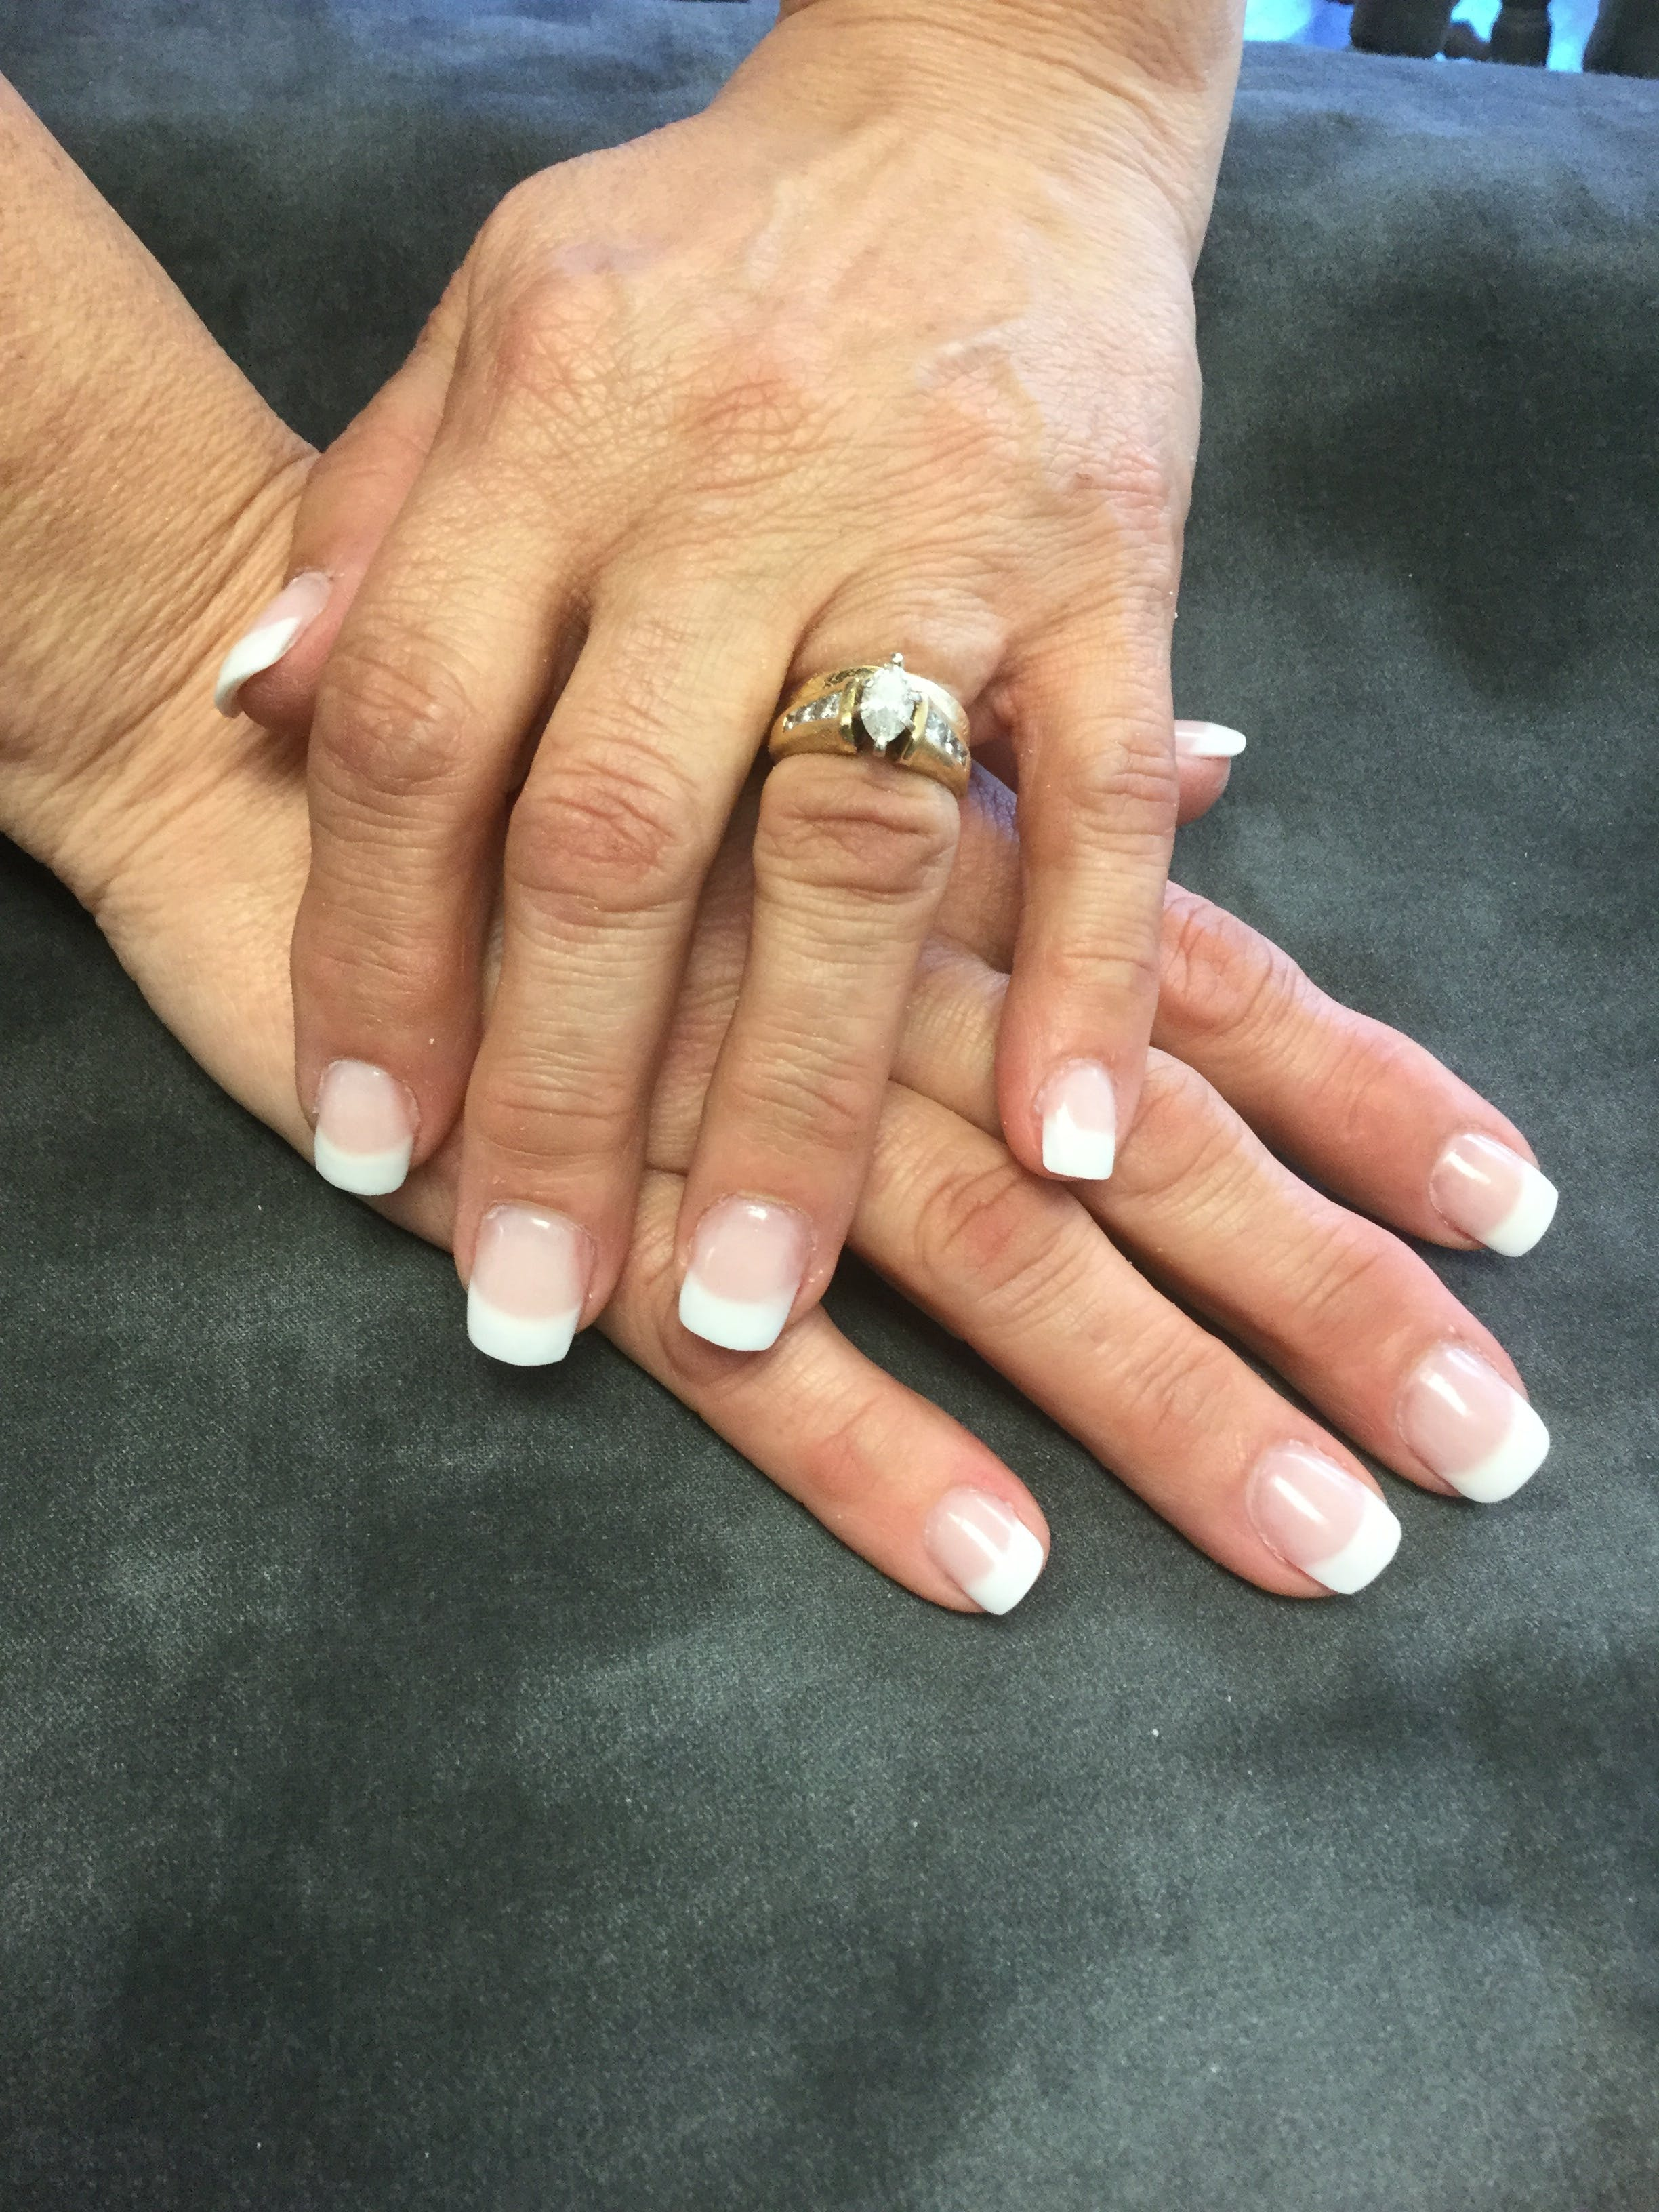 Free stock photo of #frenchmanicure #nails